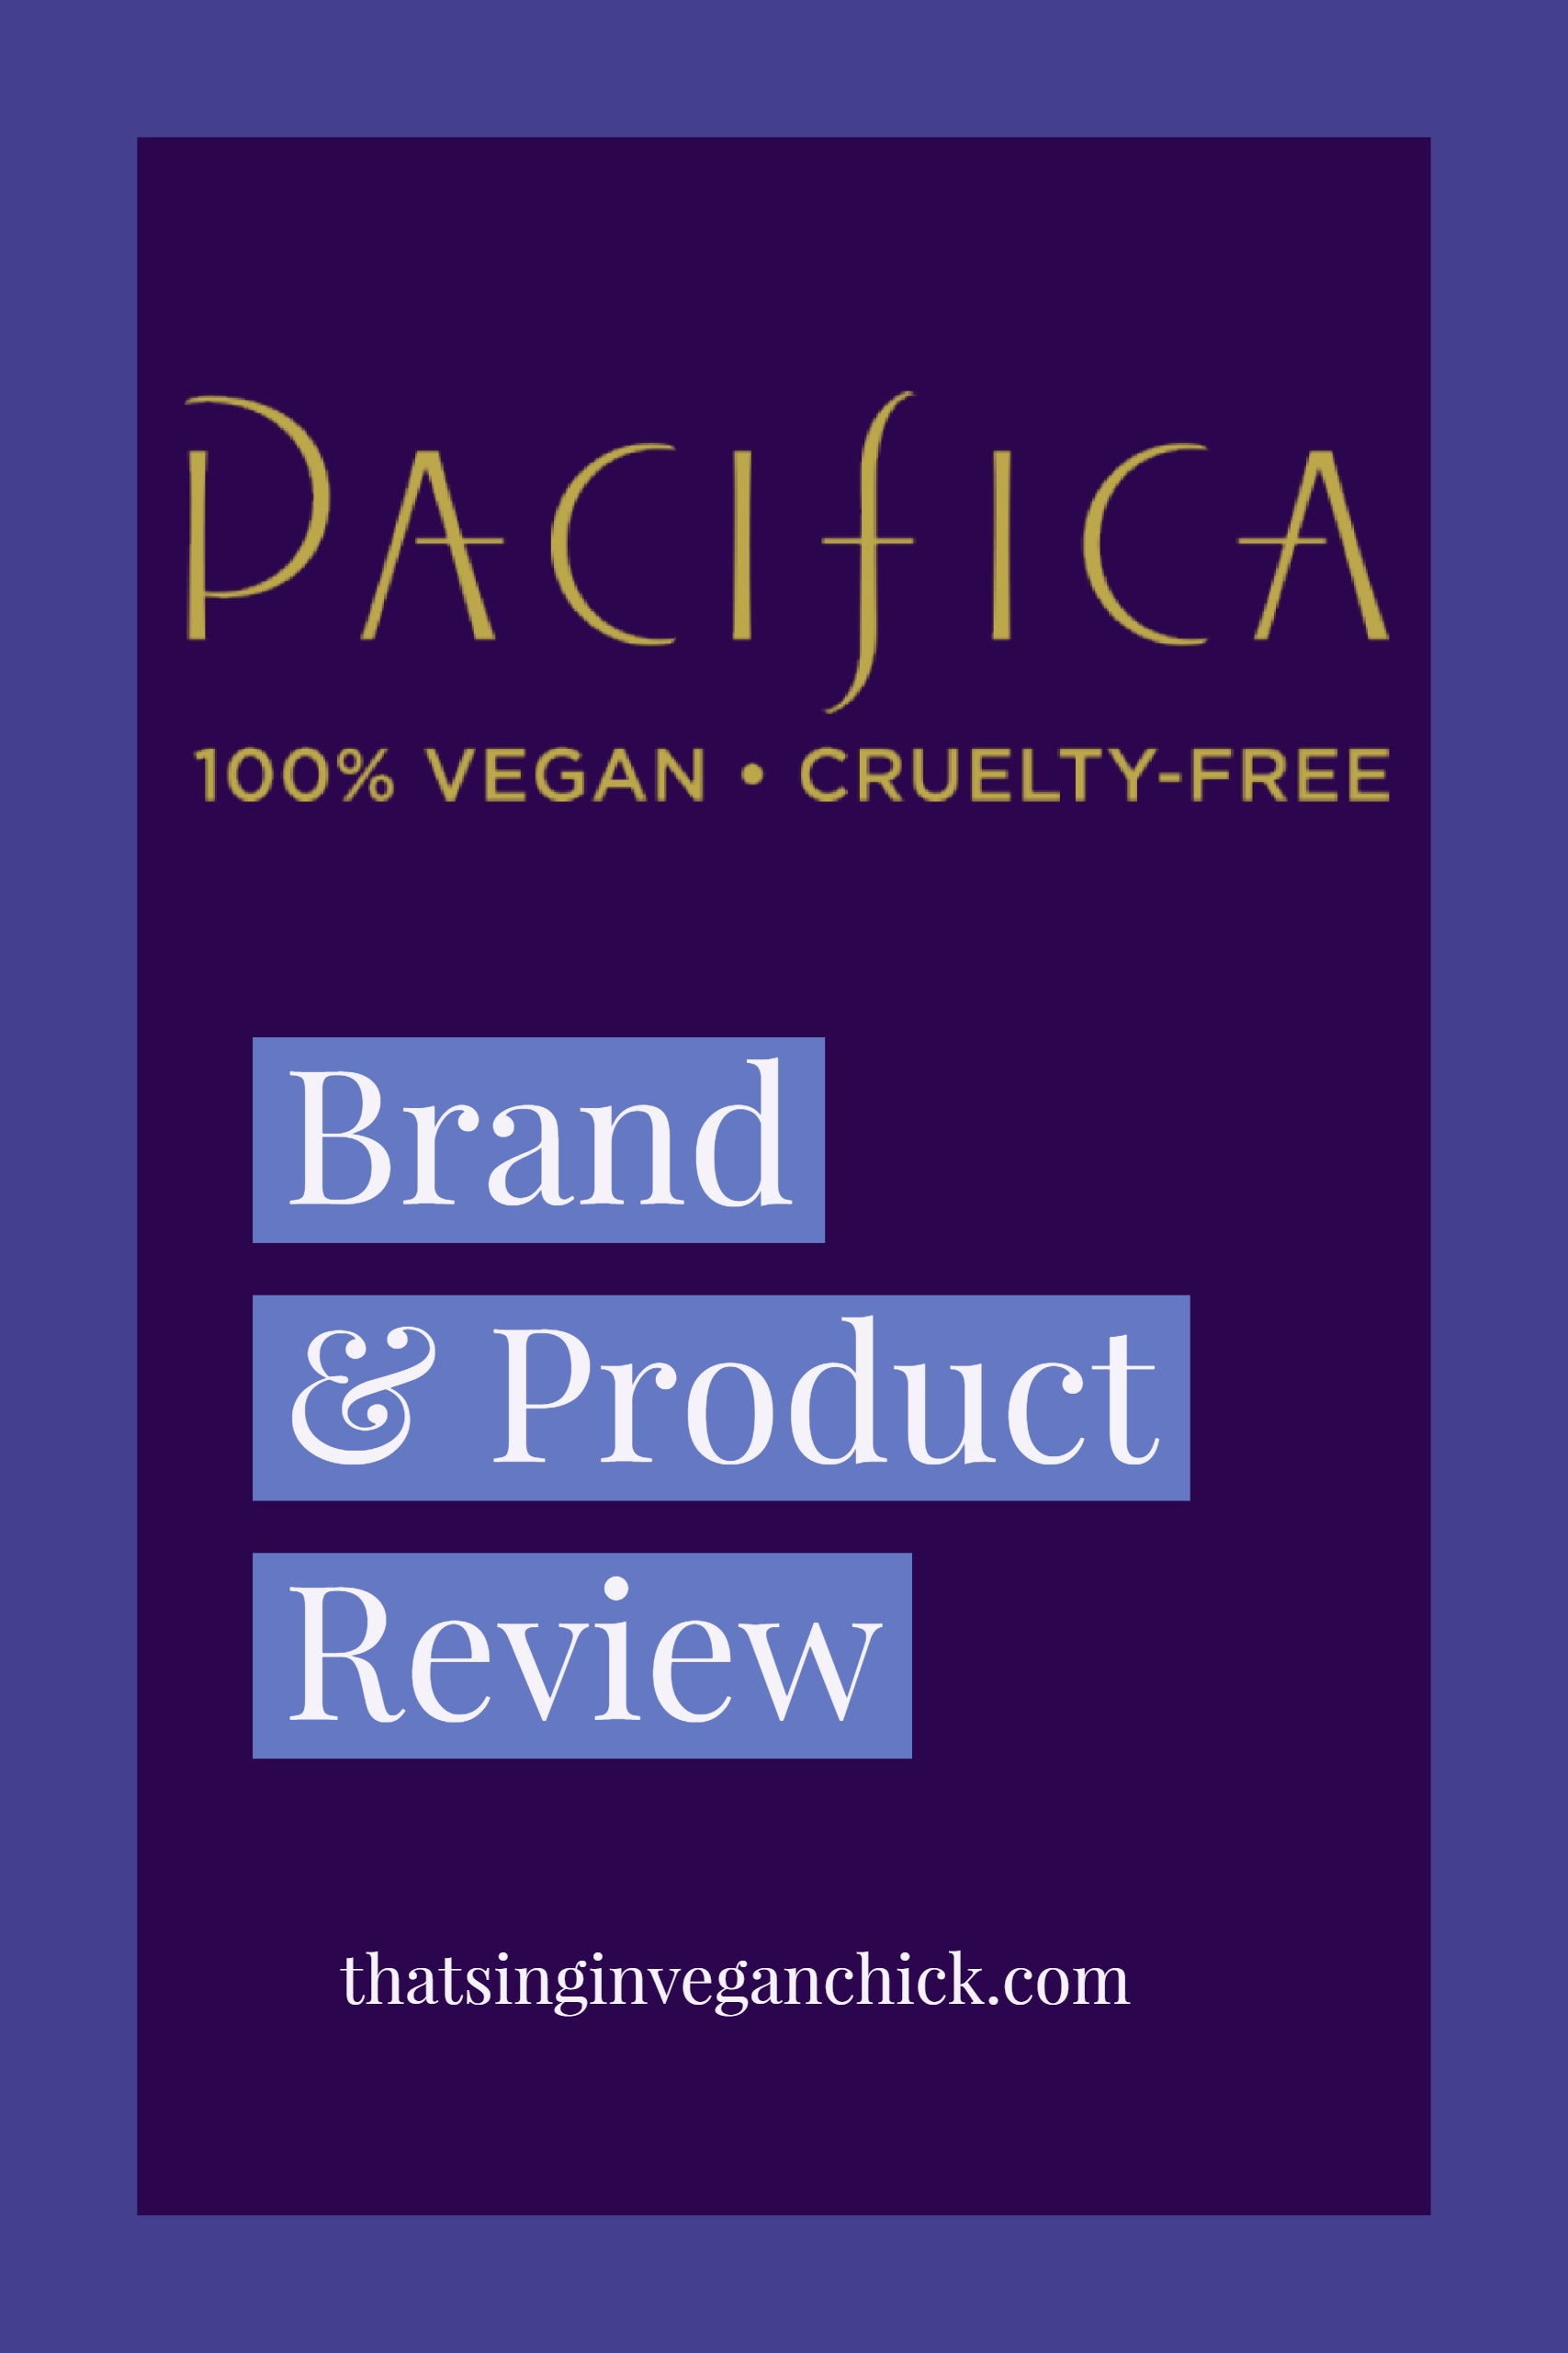 Pacifica Brand & Product Review